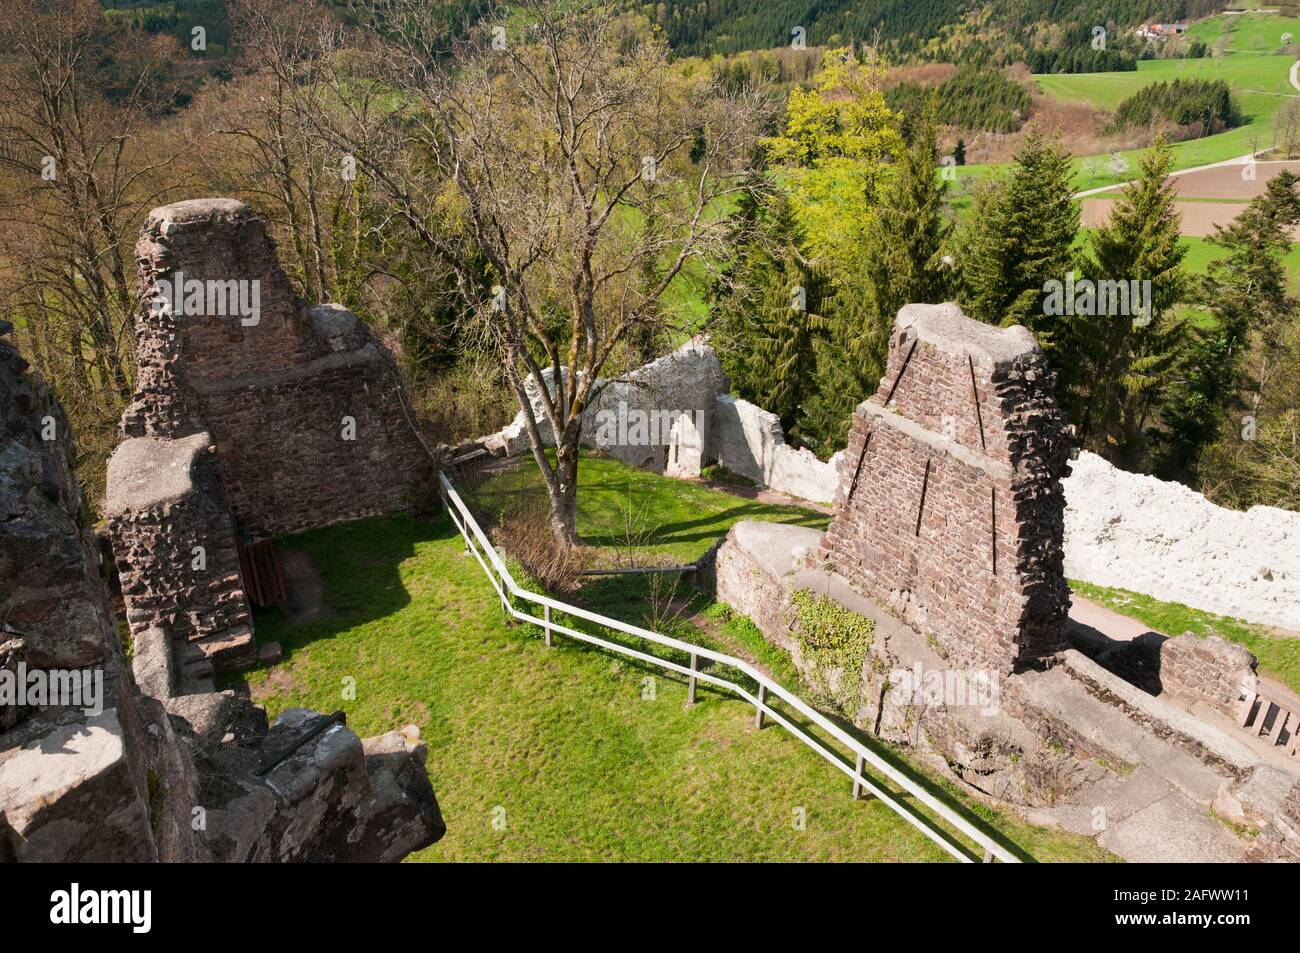 Ruins of Burgruine Hohengeroldseck castle on Schonberg hill near Seelbach, Black Forest, Baden-Wurttemberg, Germany Stock Photo